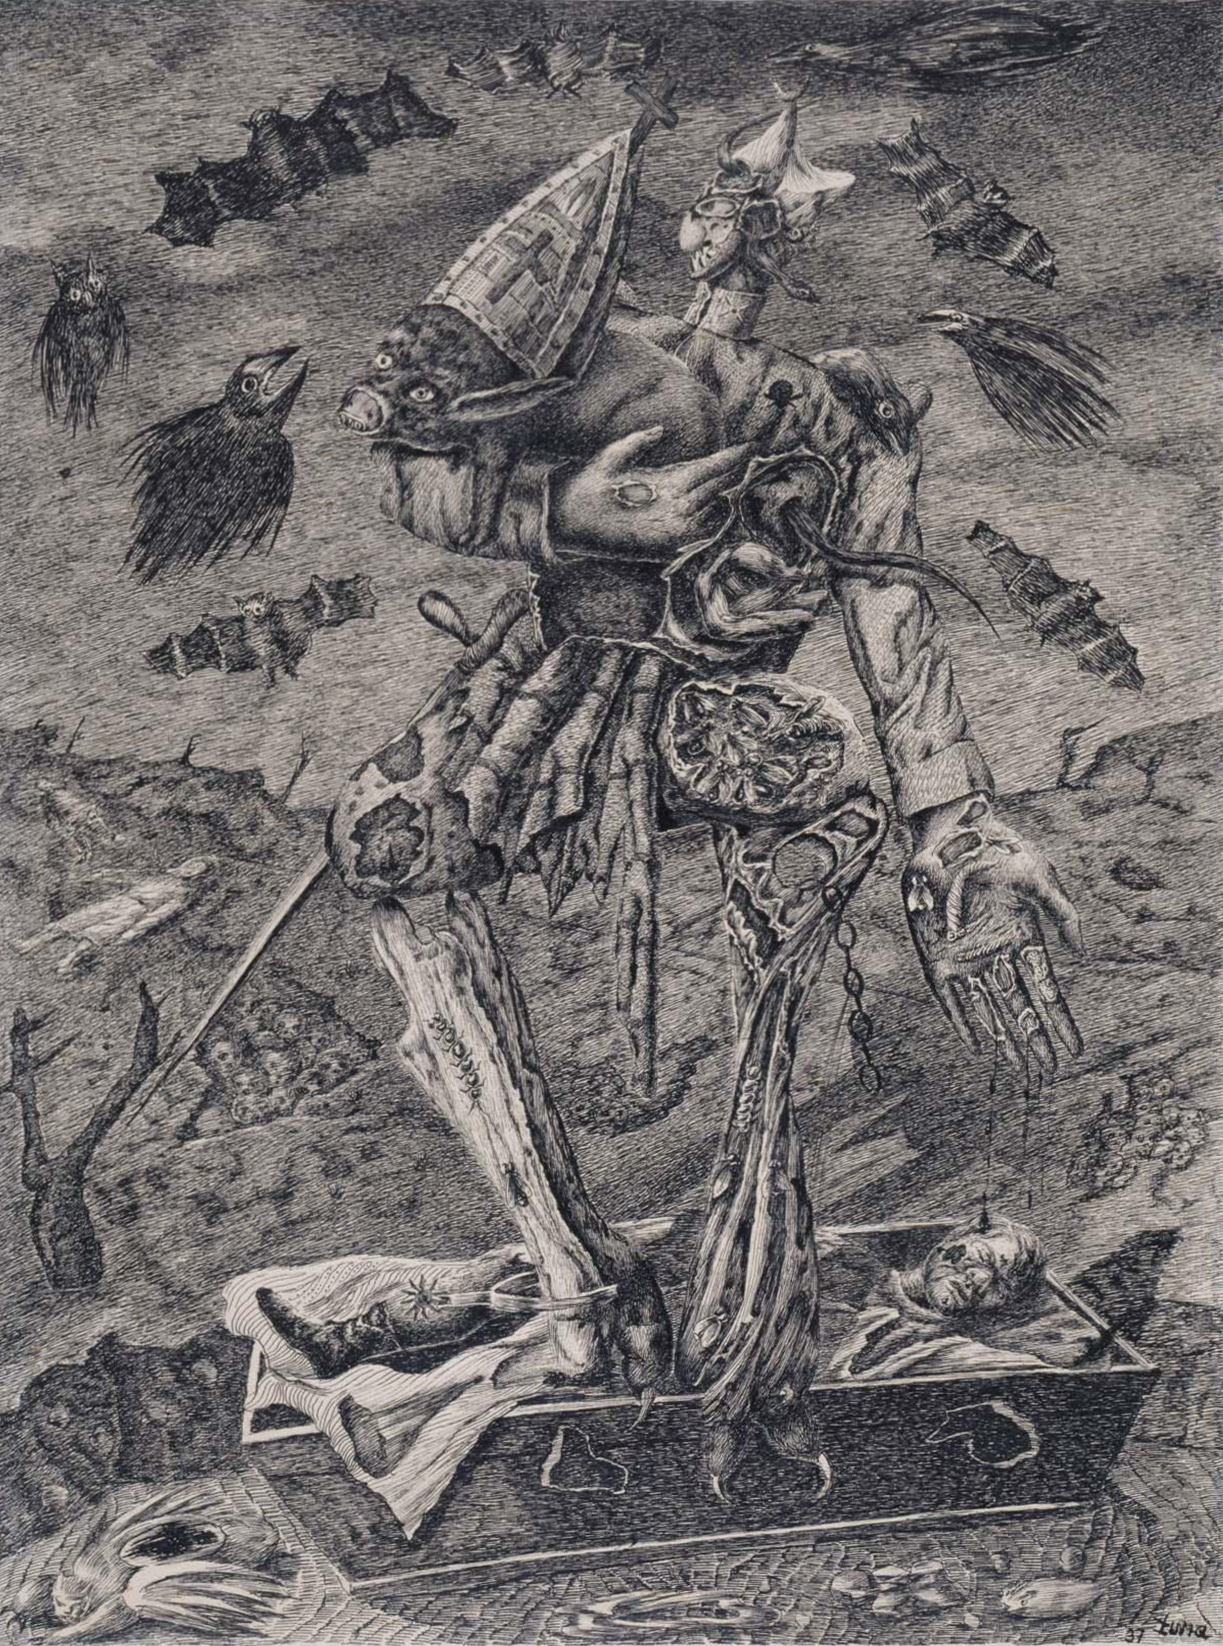 Antonio Rodríguez Luna - The Dictator, 1937